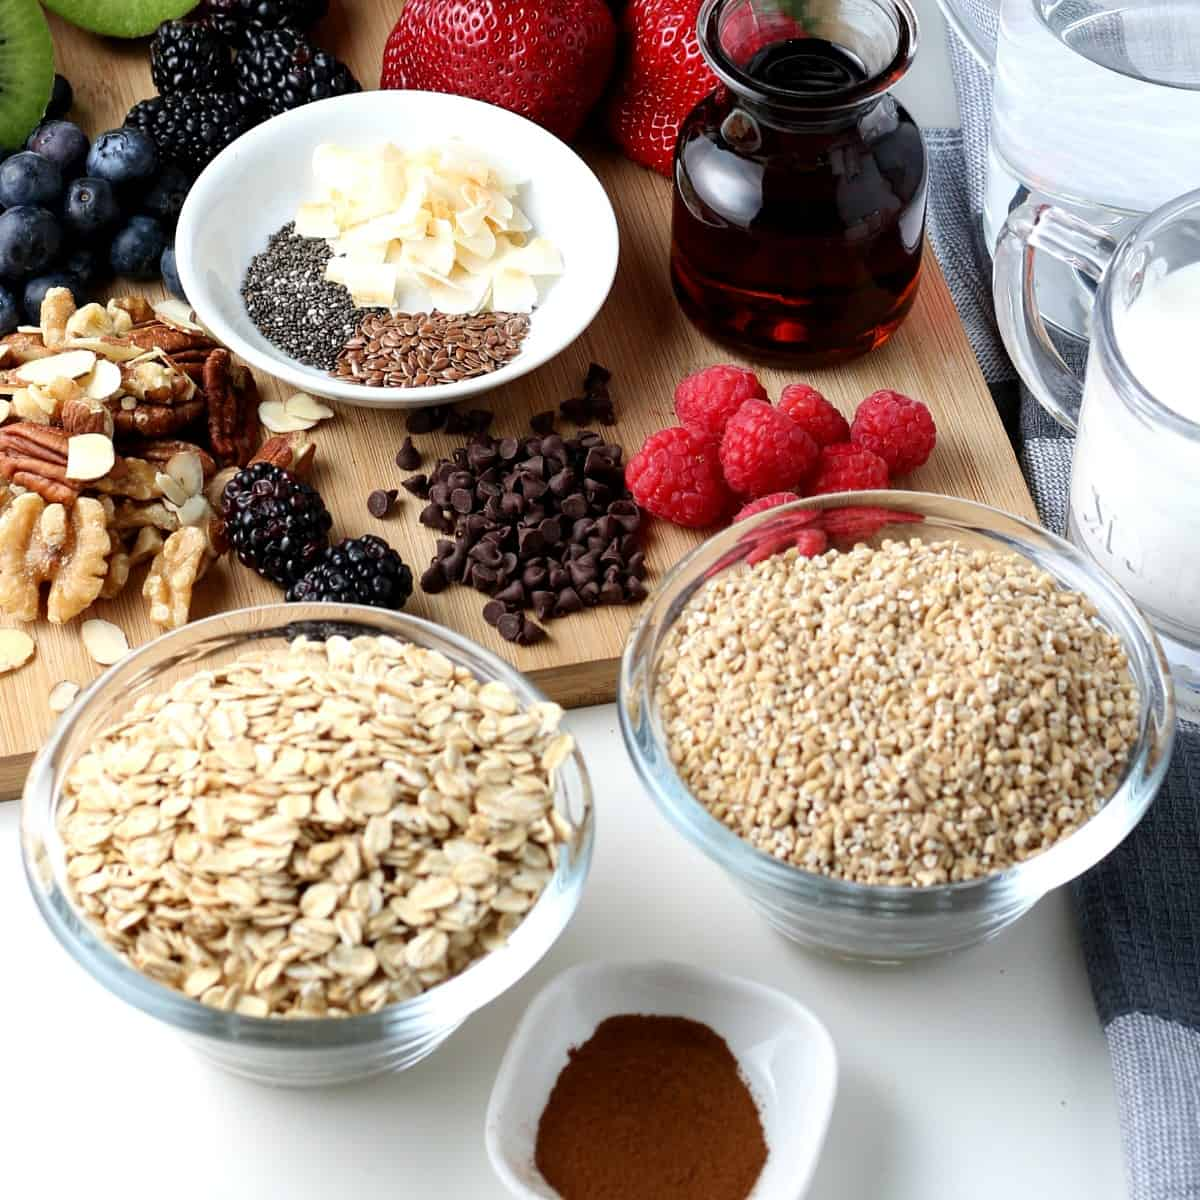 Angled photo of all of the ingredients for instant pot oatmeal including the fruit toppings.